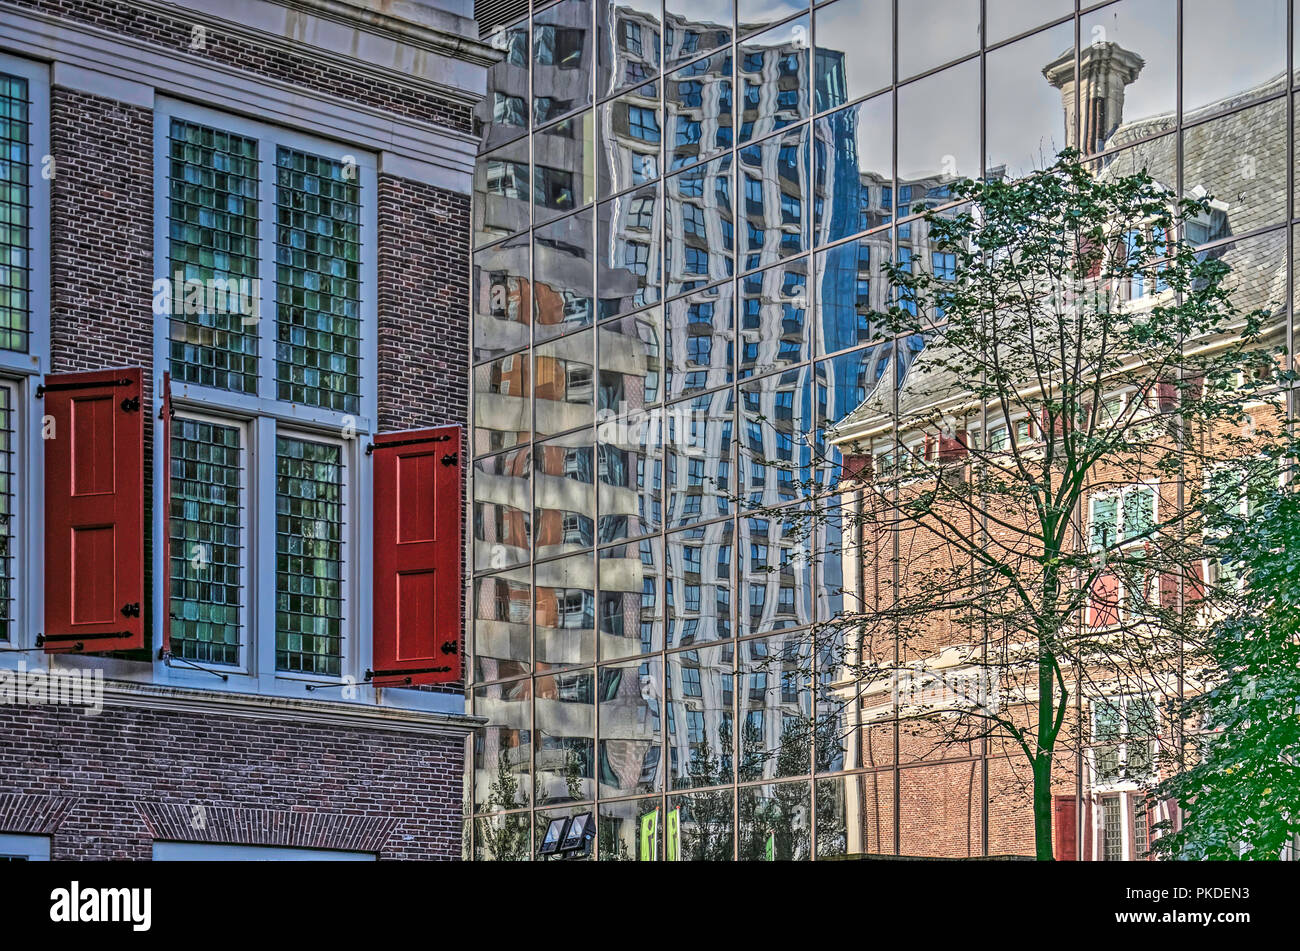 Rotterdam, The Netherlands, September 9, 2017: The brick facade of 17th century Schielandshuis reflects in the shiny glass facade of a nearby office t Stock Photo